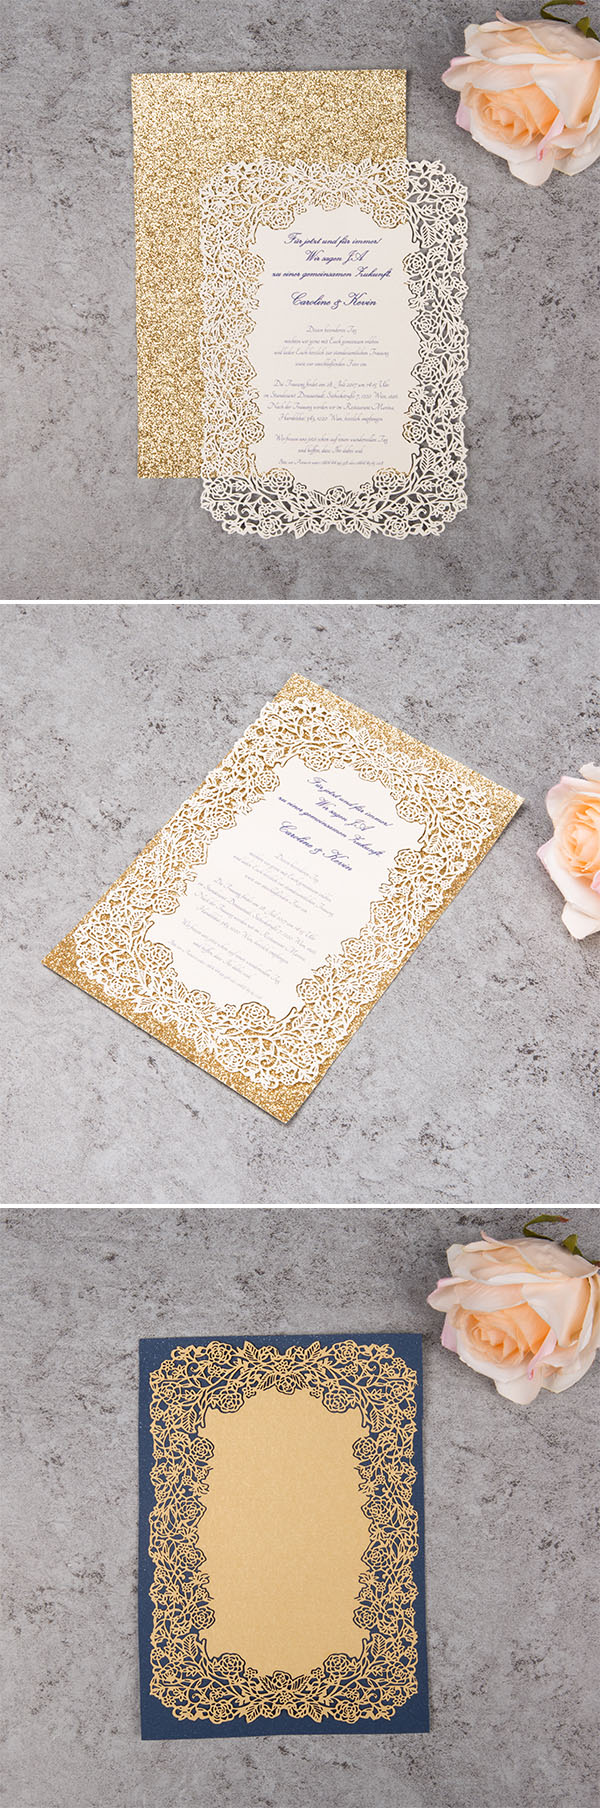 DIY invitation ideas of adding backer card to your wedding invitations